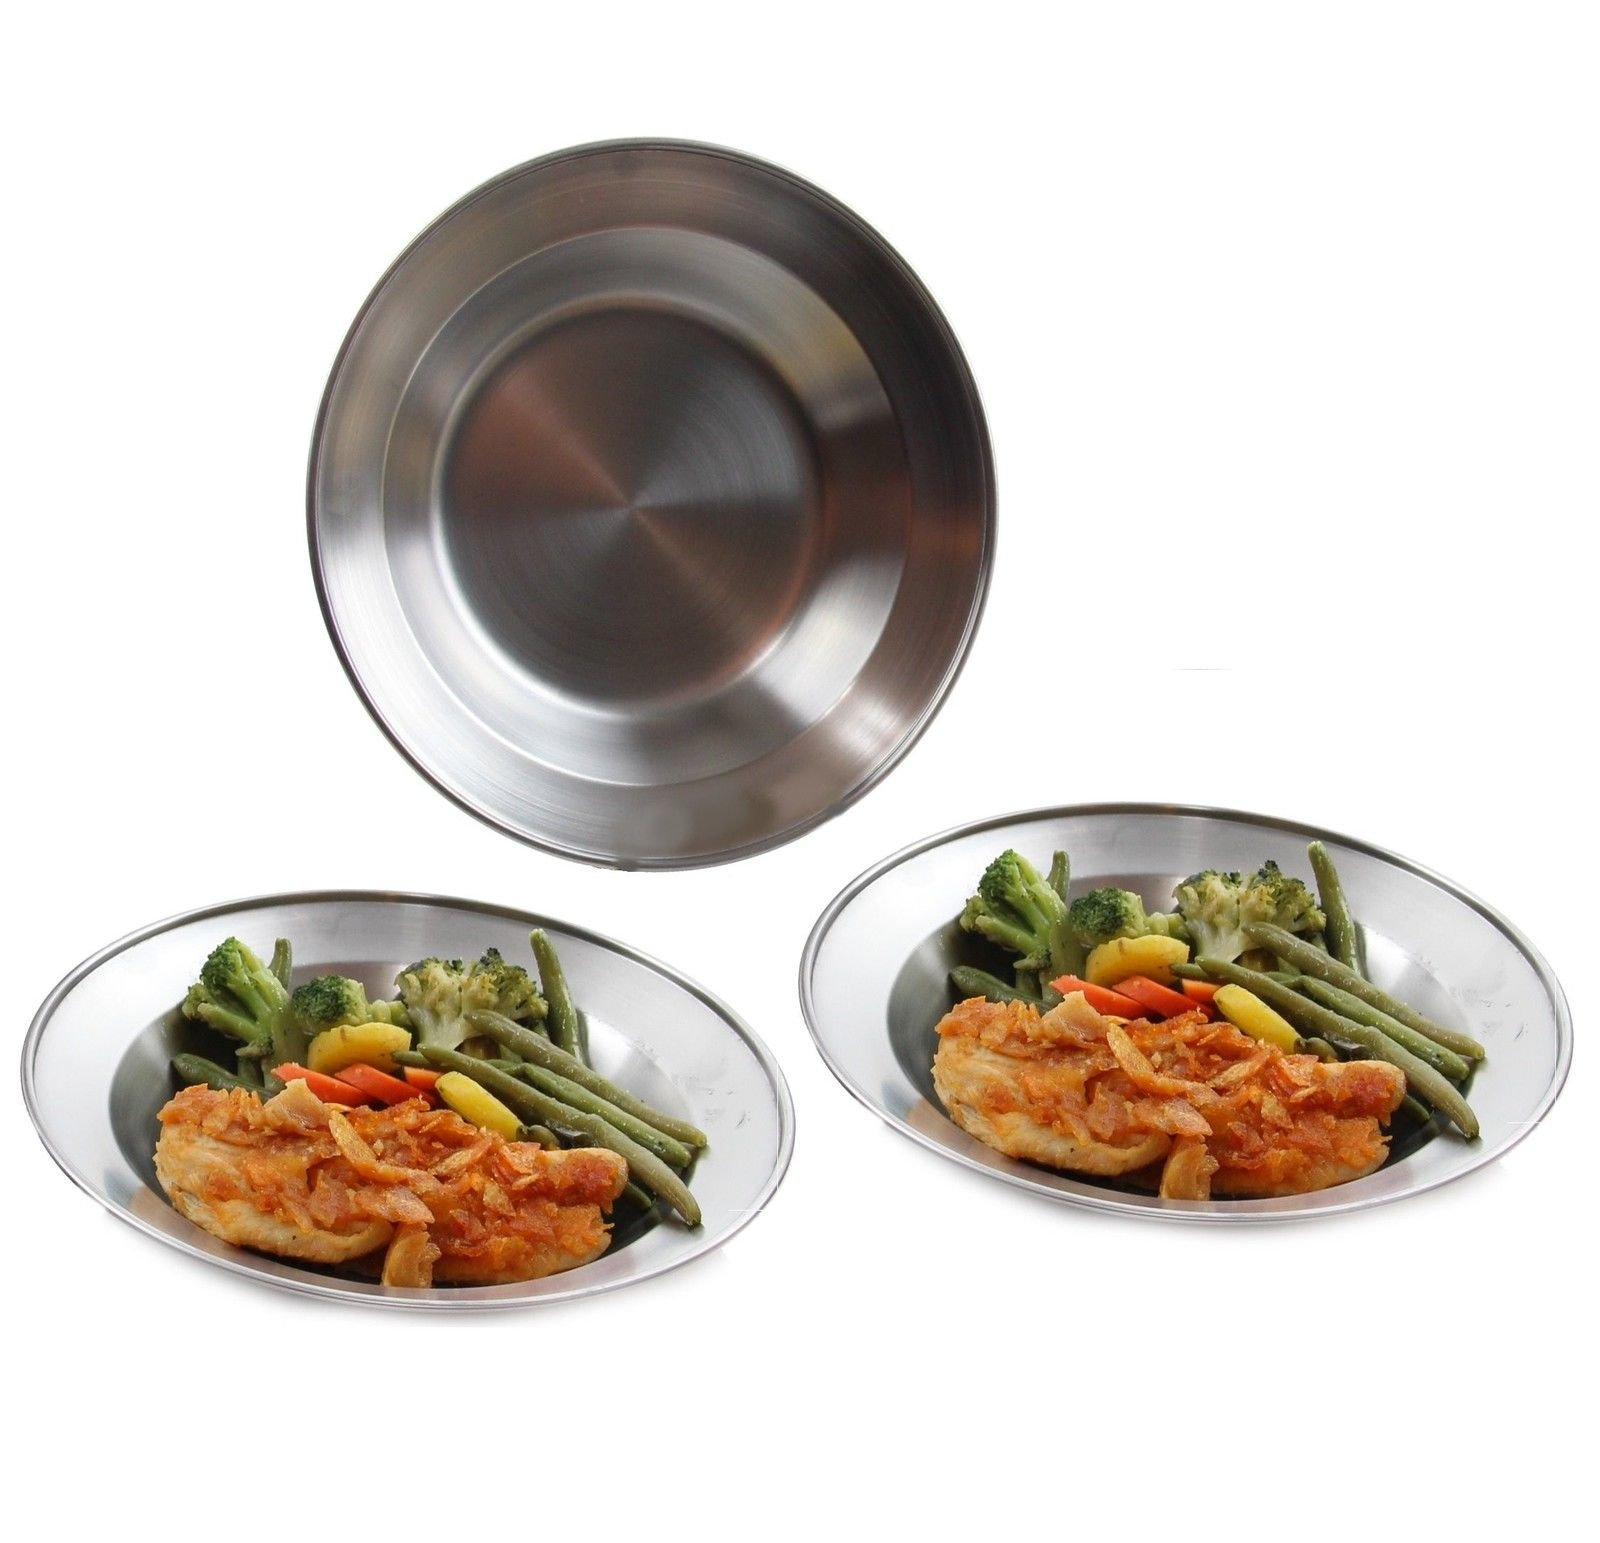 Wealers 8.5 Inch Stainless Steel Round Plate Set for Camping Outdoor with a Bag